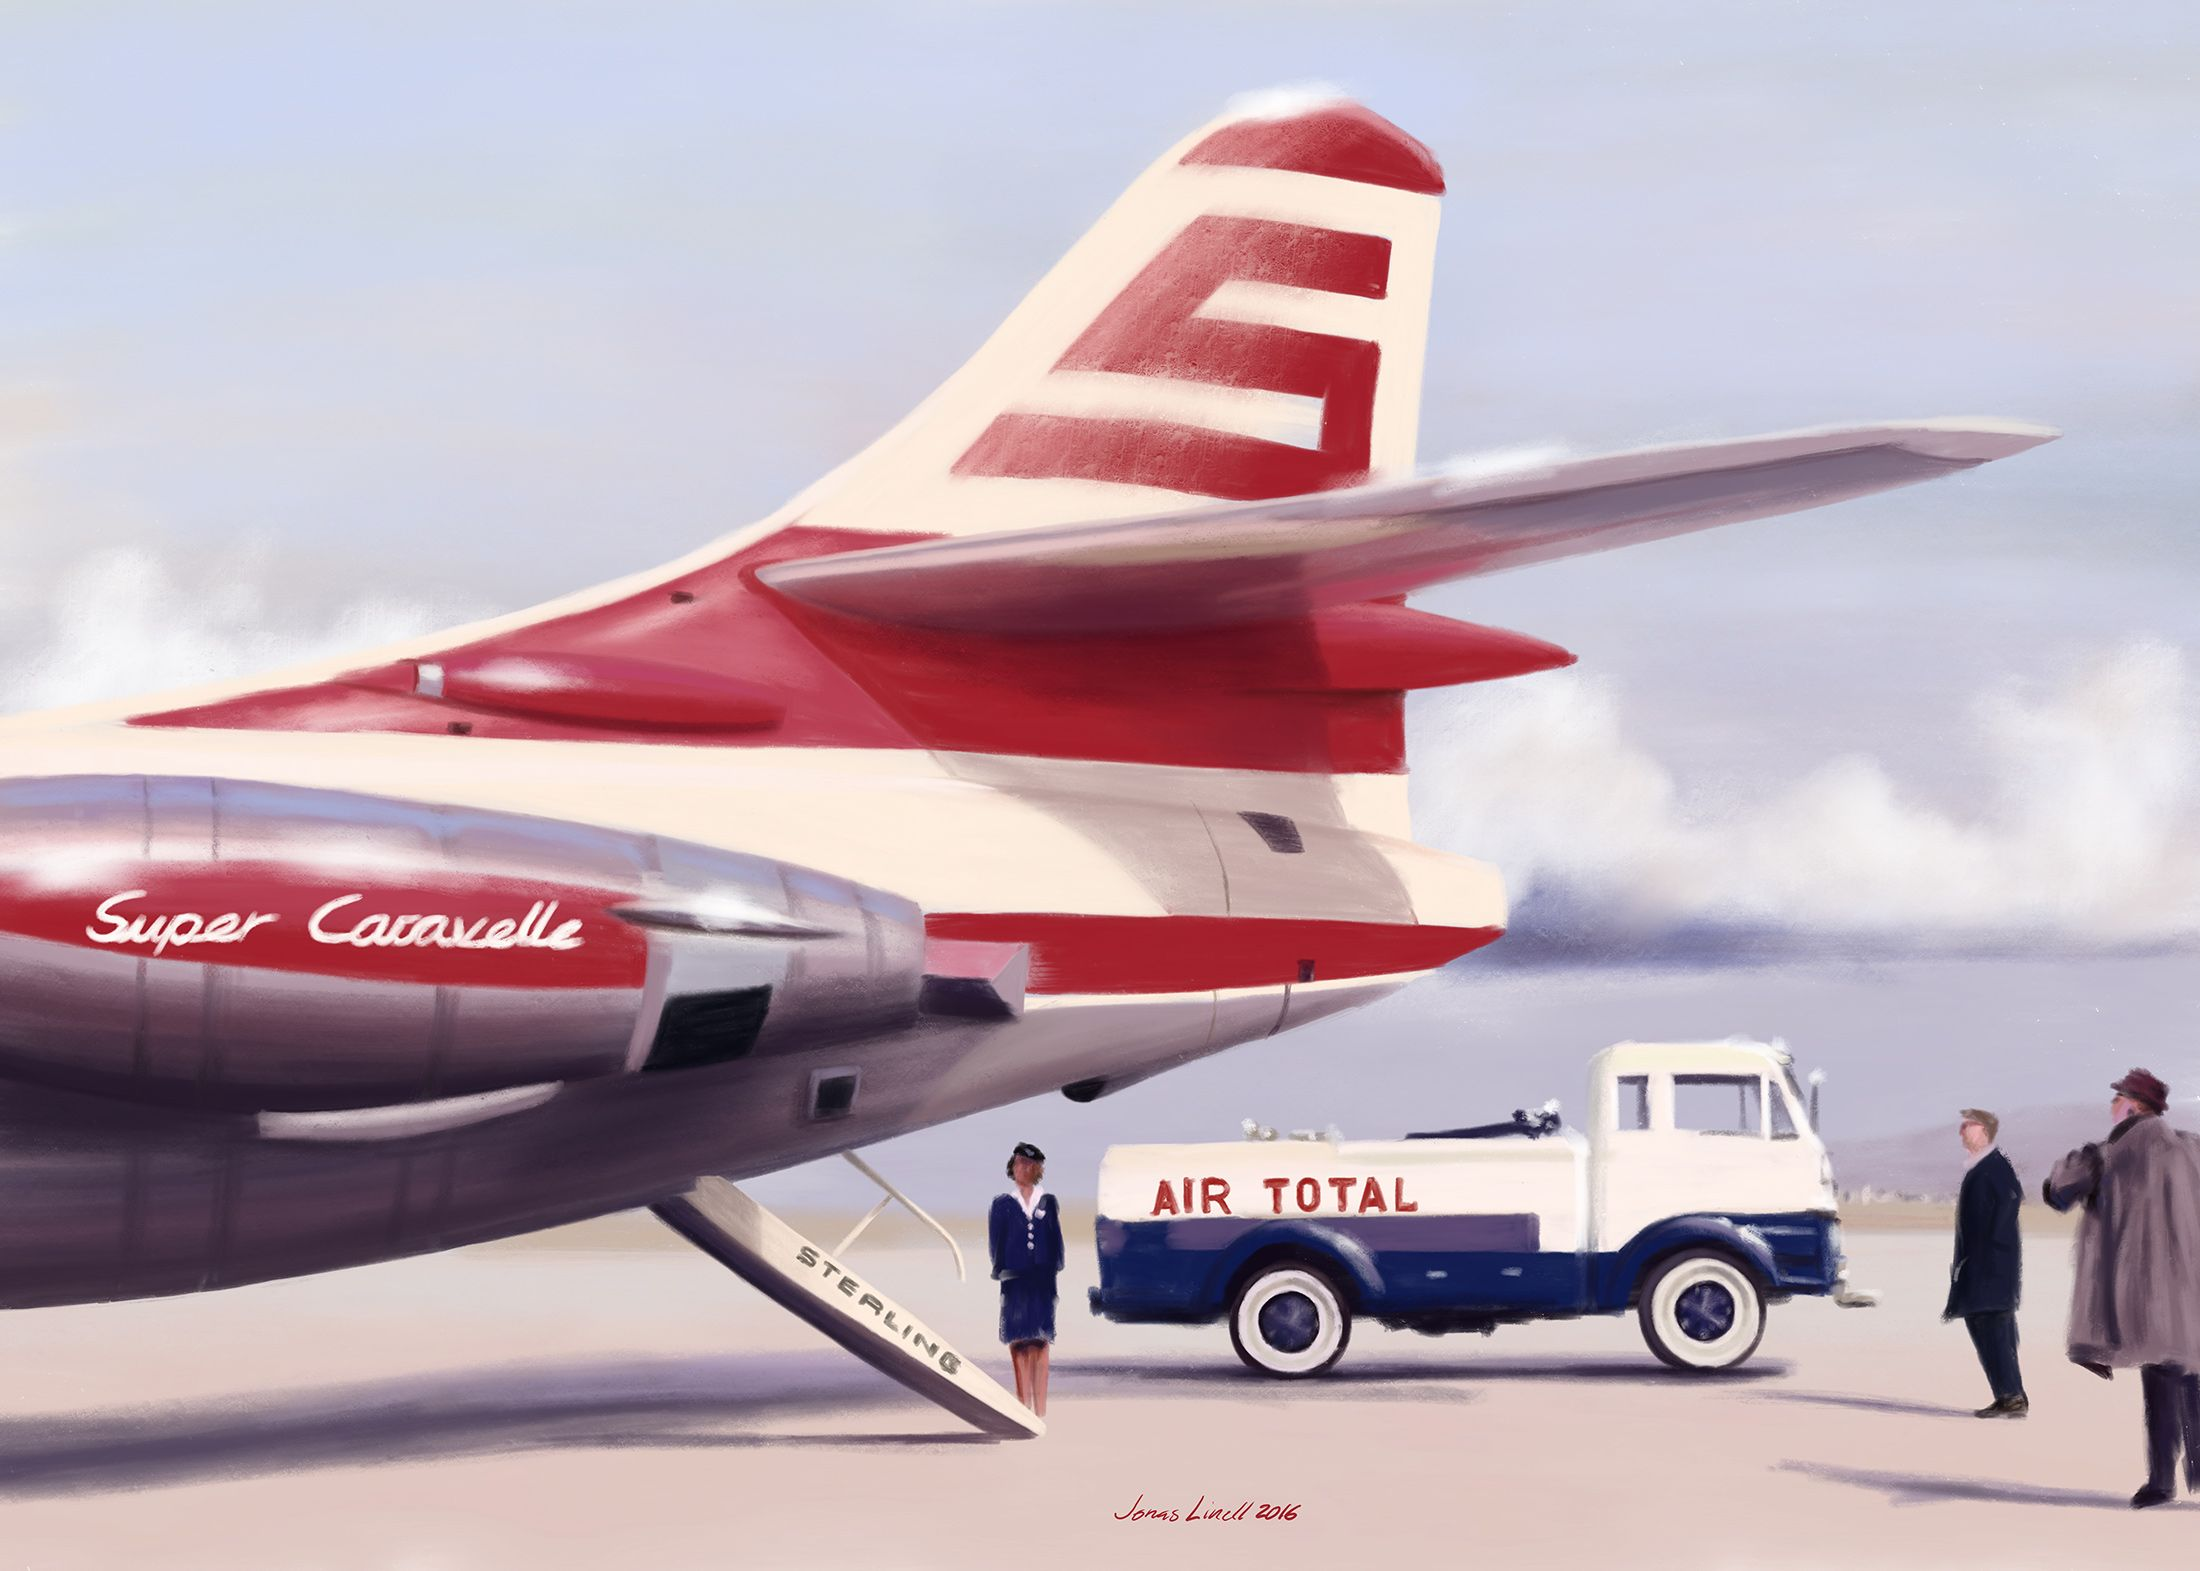 When air travel was great. Sterling AIrways Super Caravelle sometime in the 1960s. Painting by Jonas Linell 2016.